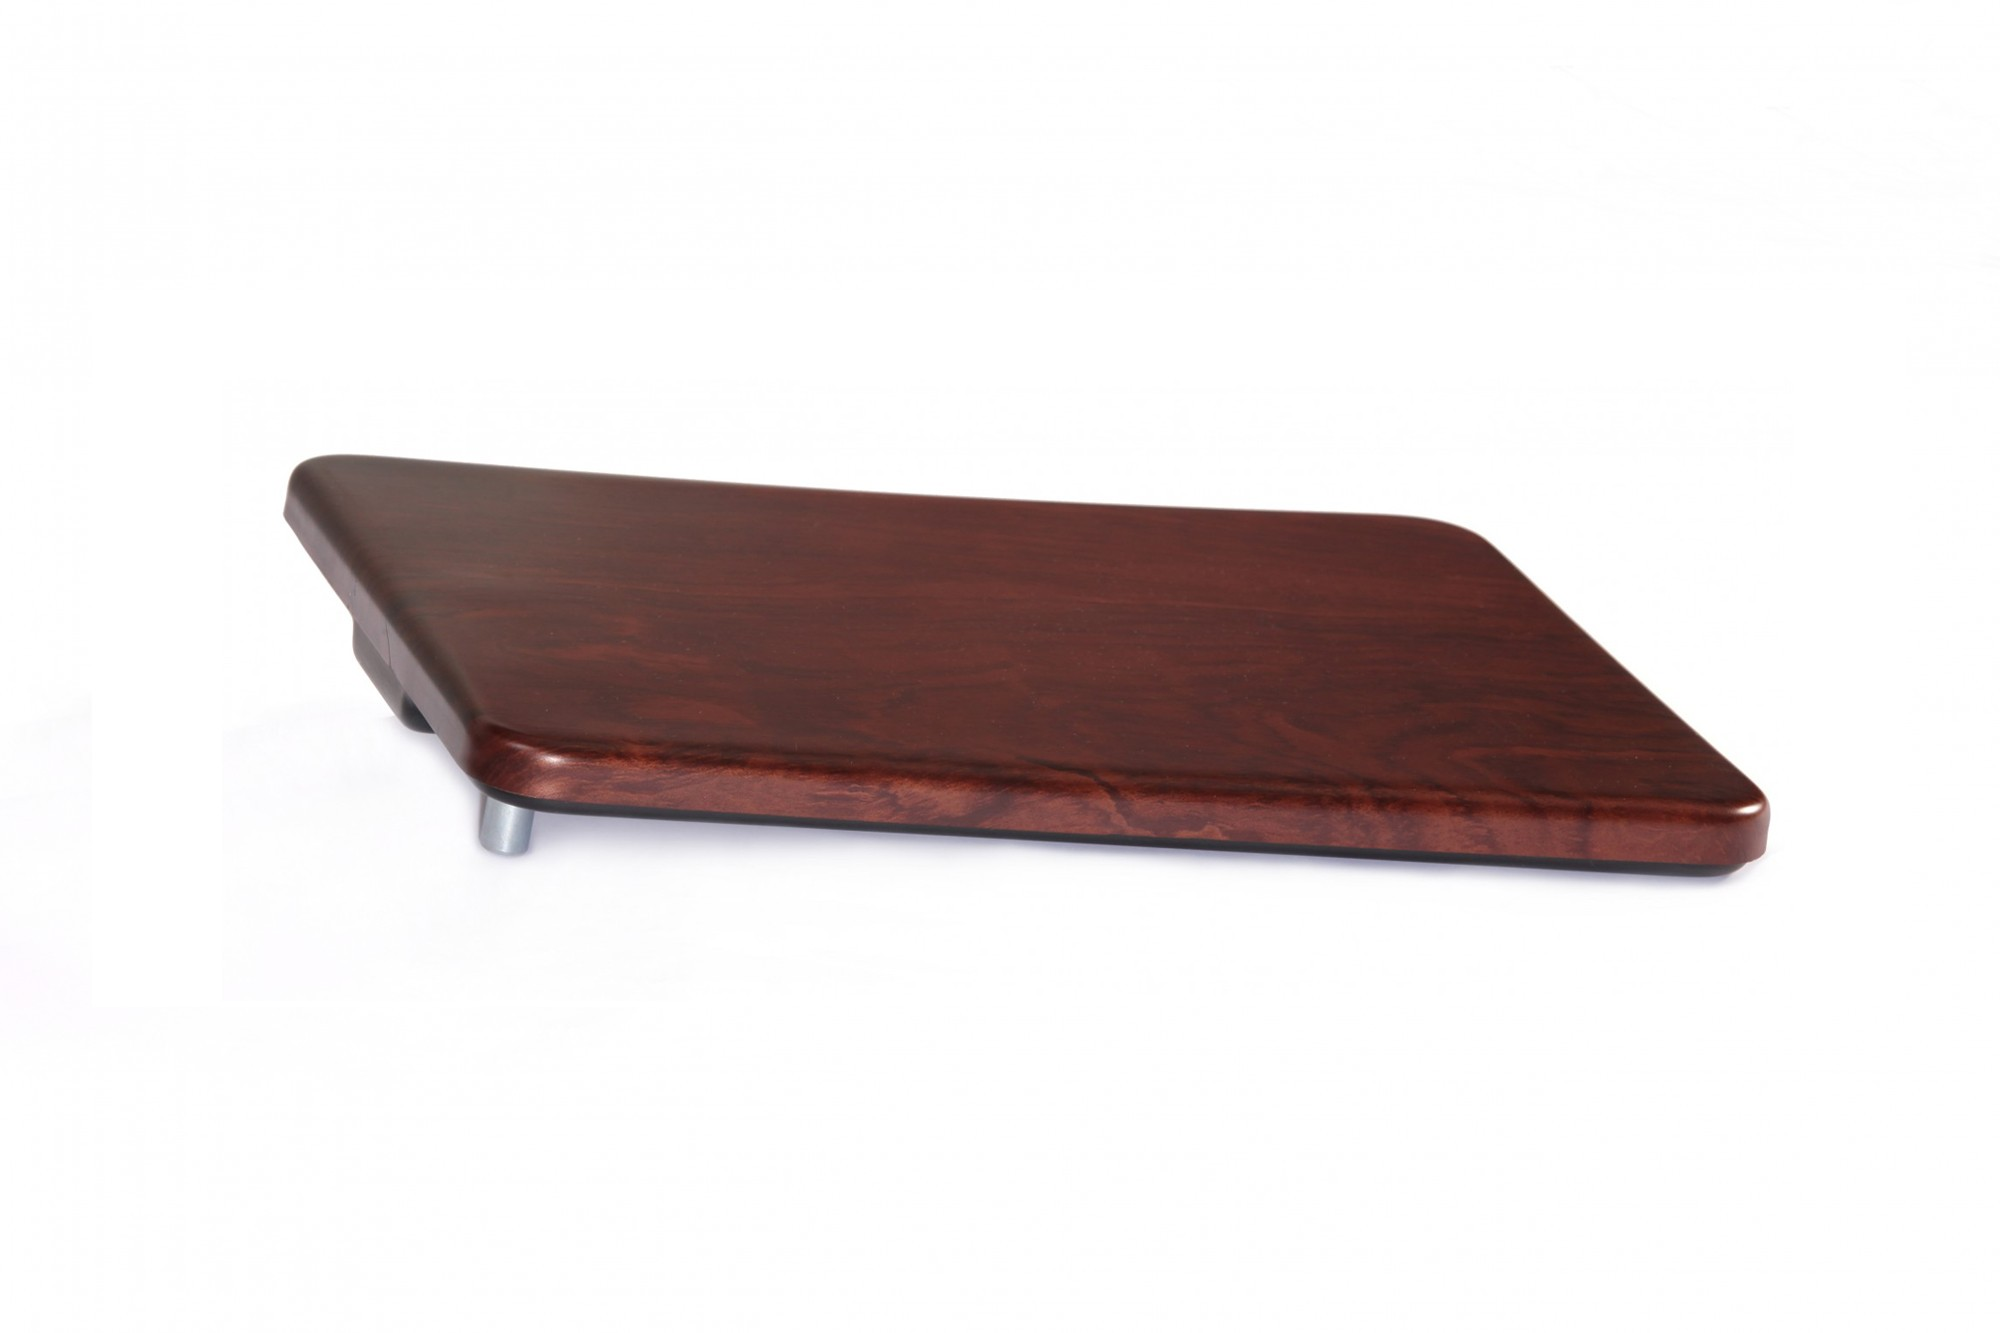 Plastic Table Top w/ Wood Grain Finish